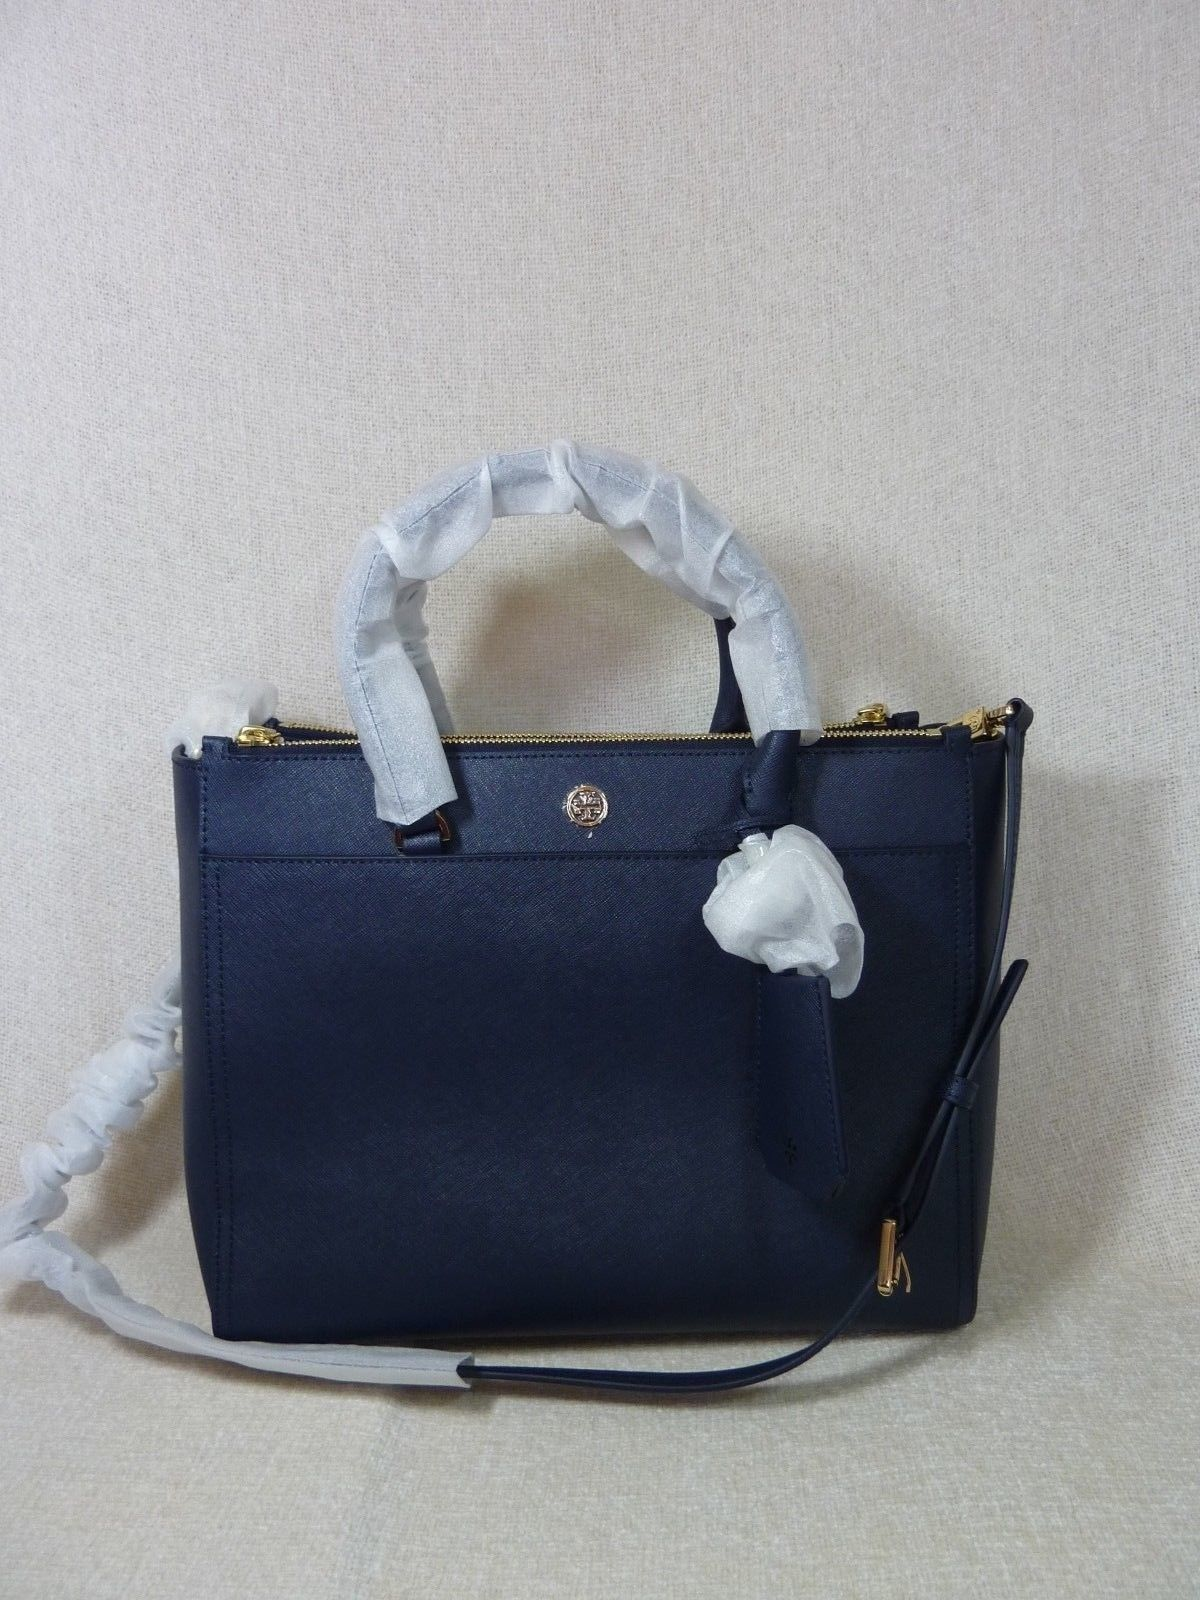 Tory Burch Navy Blue Saffiano Leather Robinson Double-Zip Tote $458